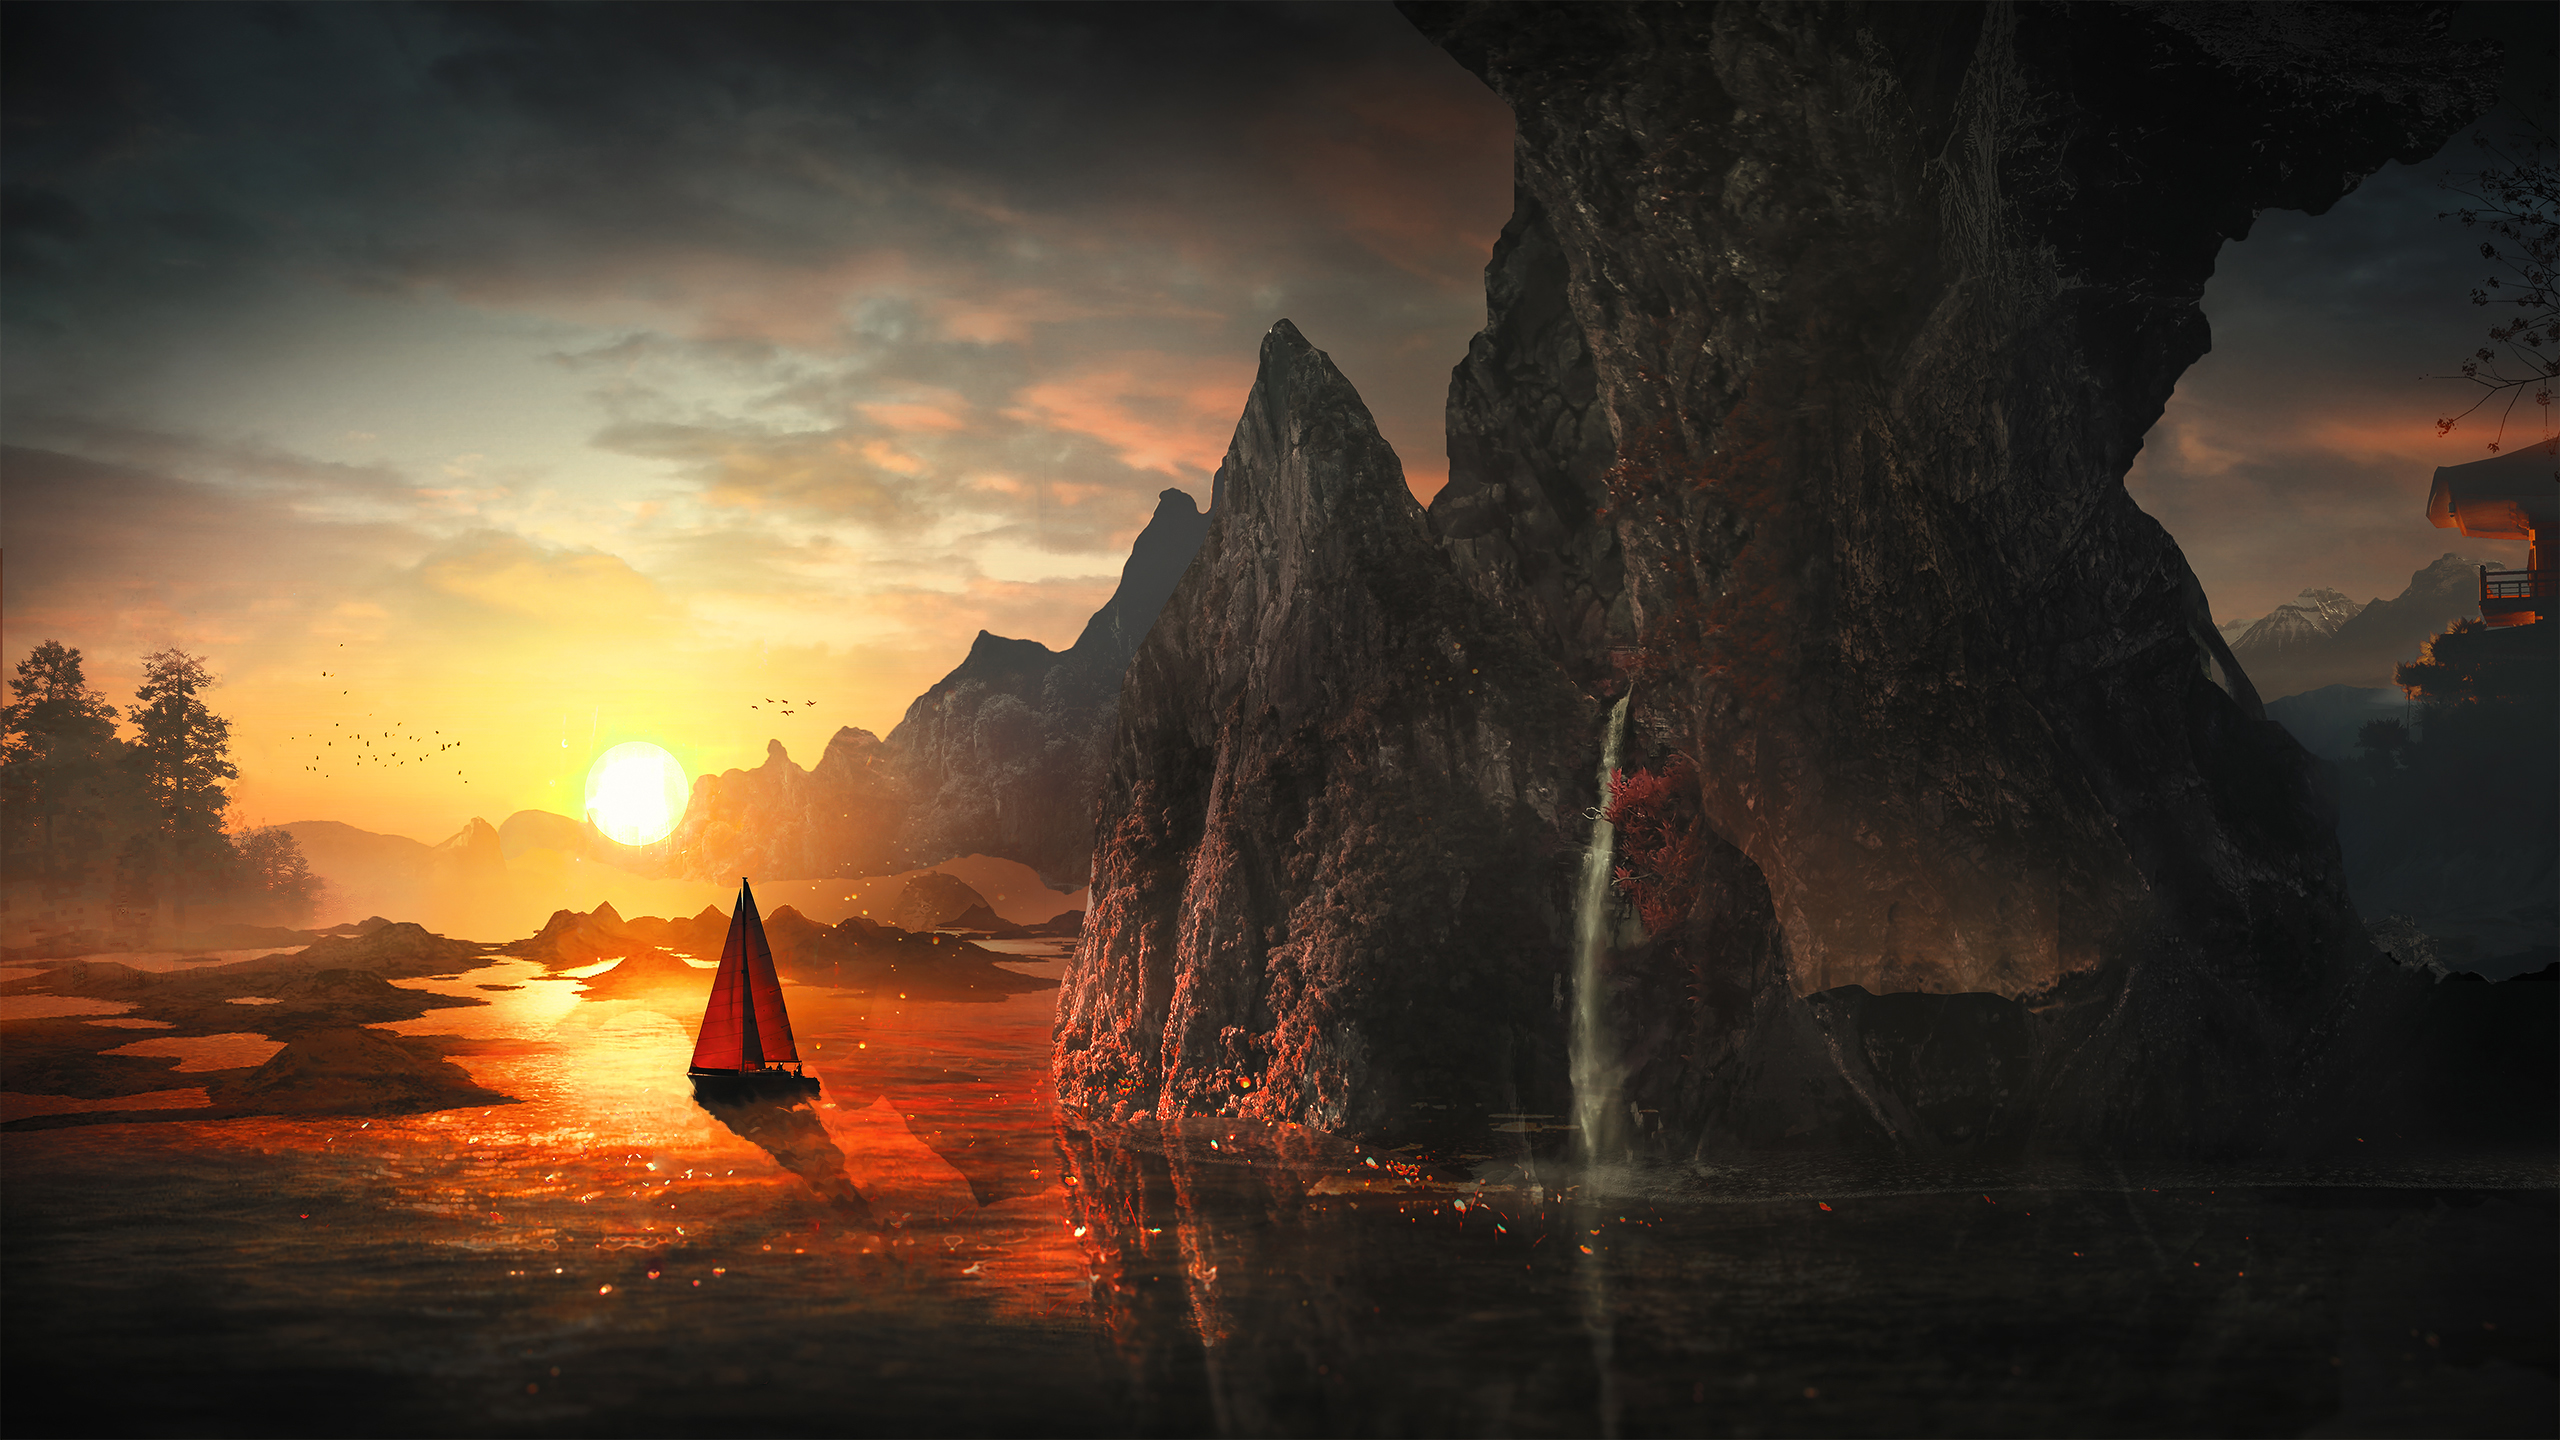 Creative Detailed Hd Fantasy Wallpapers: Wallpapers By T1na On DeviantArt